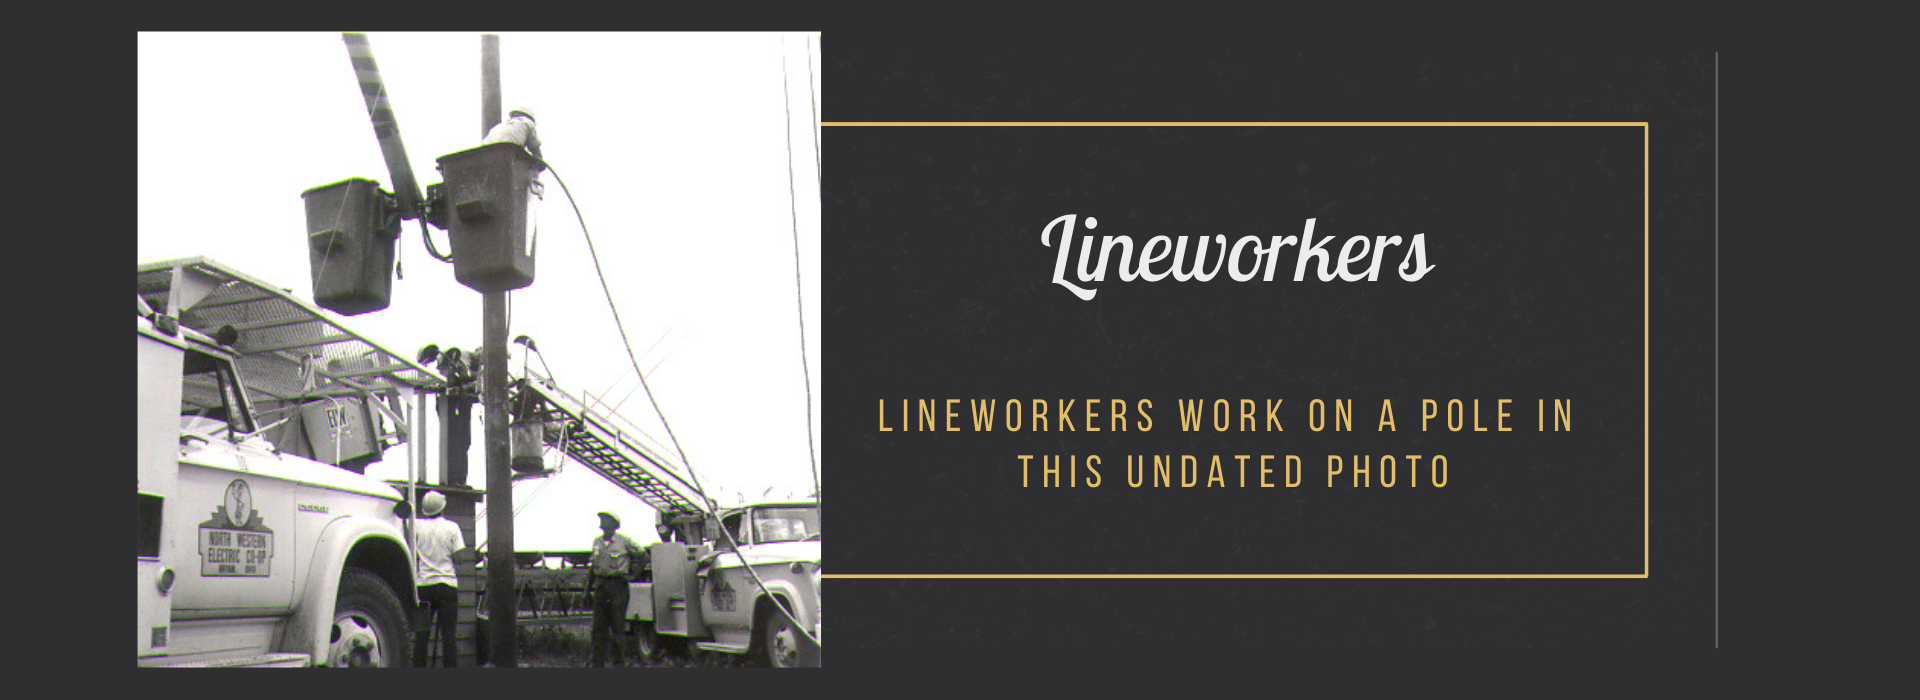 Lineworkers work on a pole in  this undated photo